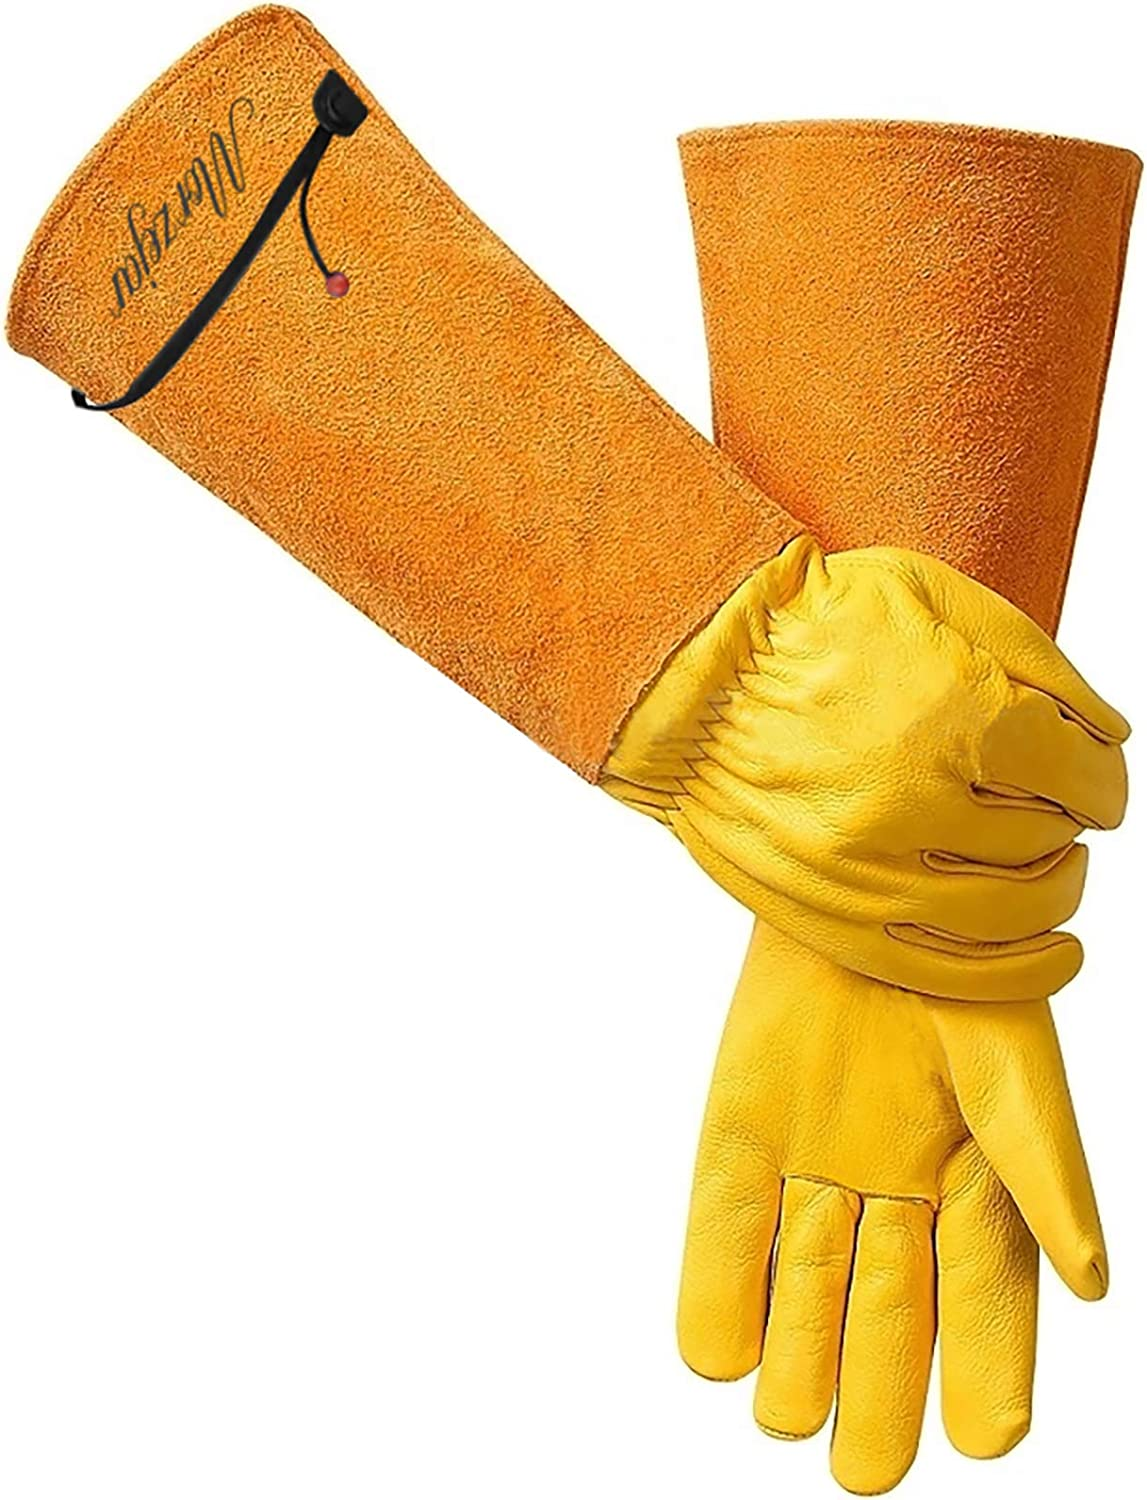 Gardening Gifts - Gardening Work Gauntlet Gloves for Men/Women Legacy Leather Thornproof Long Rose Pruning Gloves with Adjustable Cuff Lawn Gardener Supplies Tools Gifts